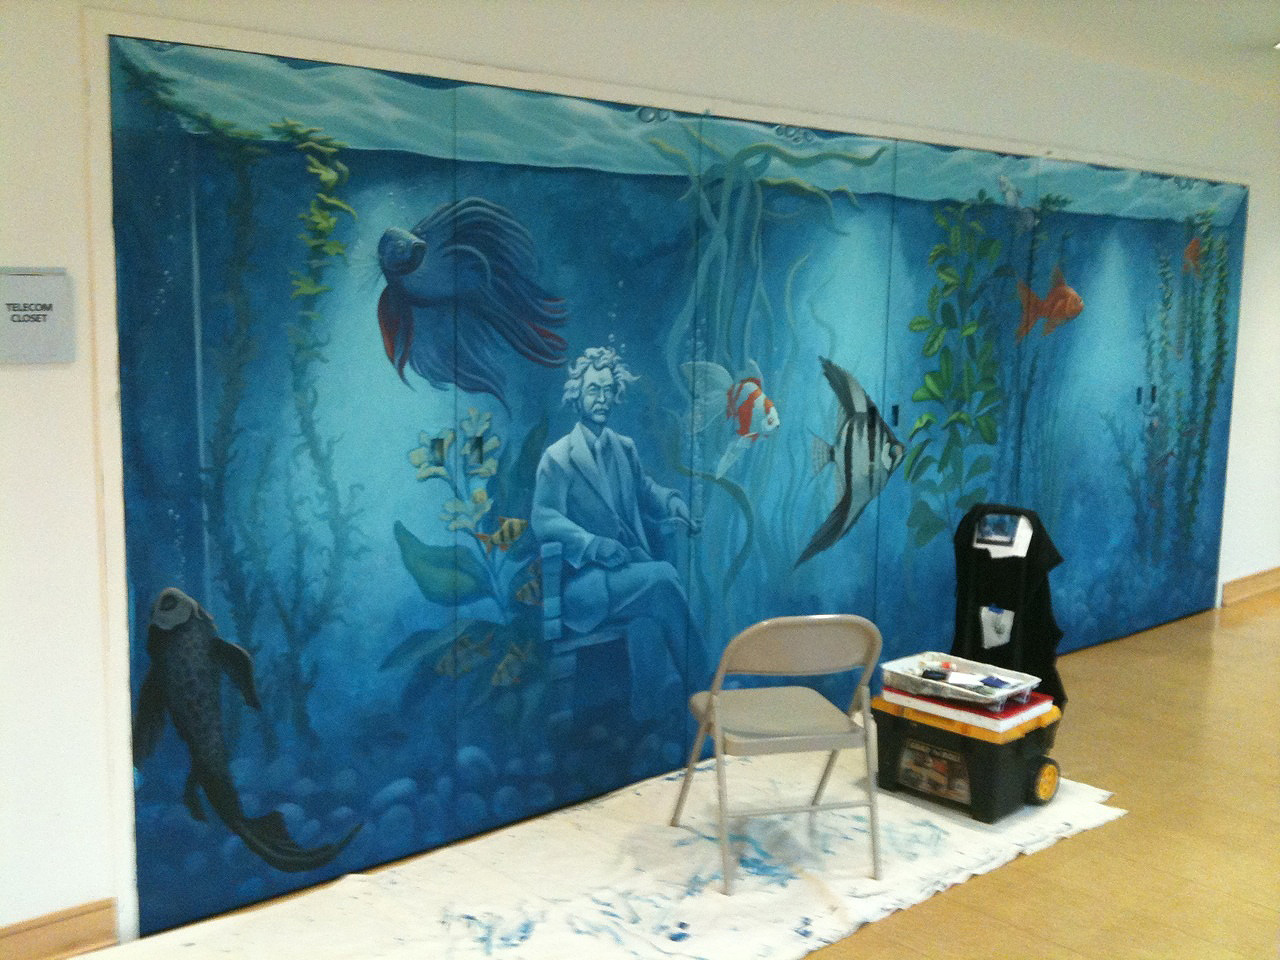 HPL mural in progress nov18[1].2010.jpg